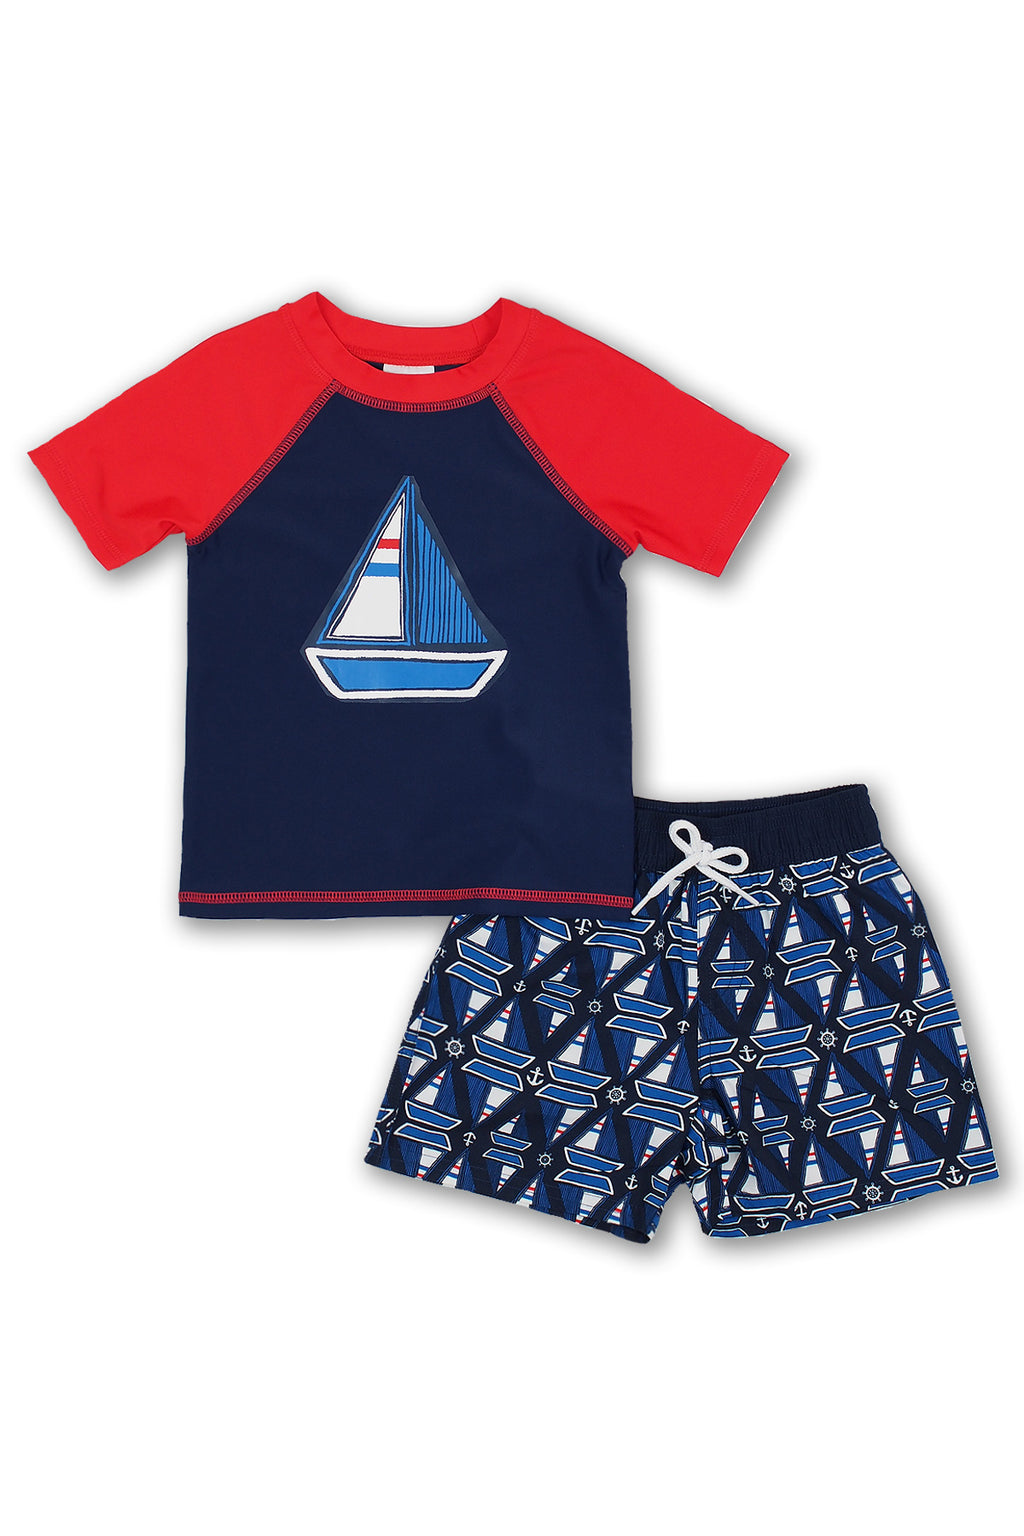 Boys Sailboat Geo Short Sleeve Rash Guard Set, Navy